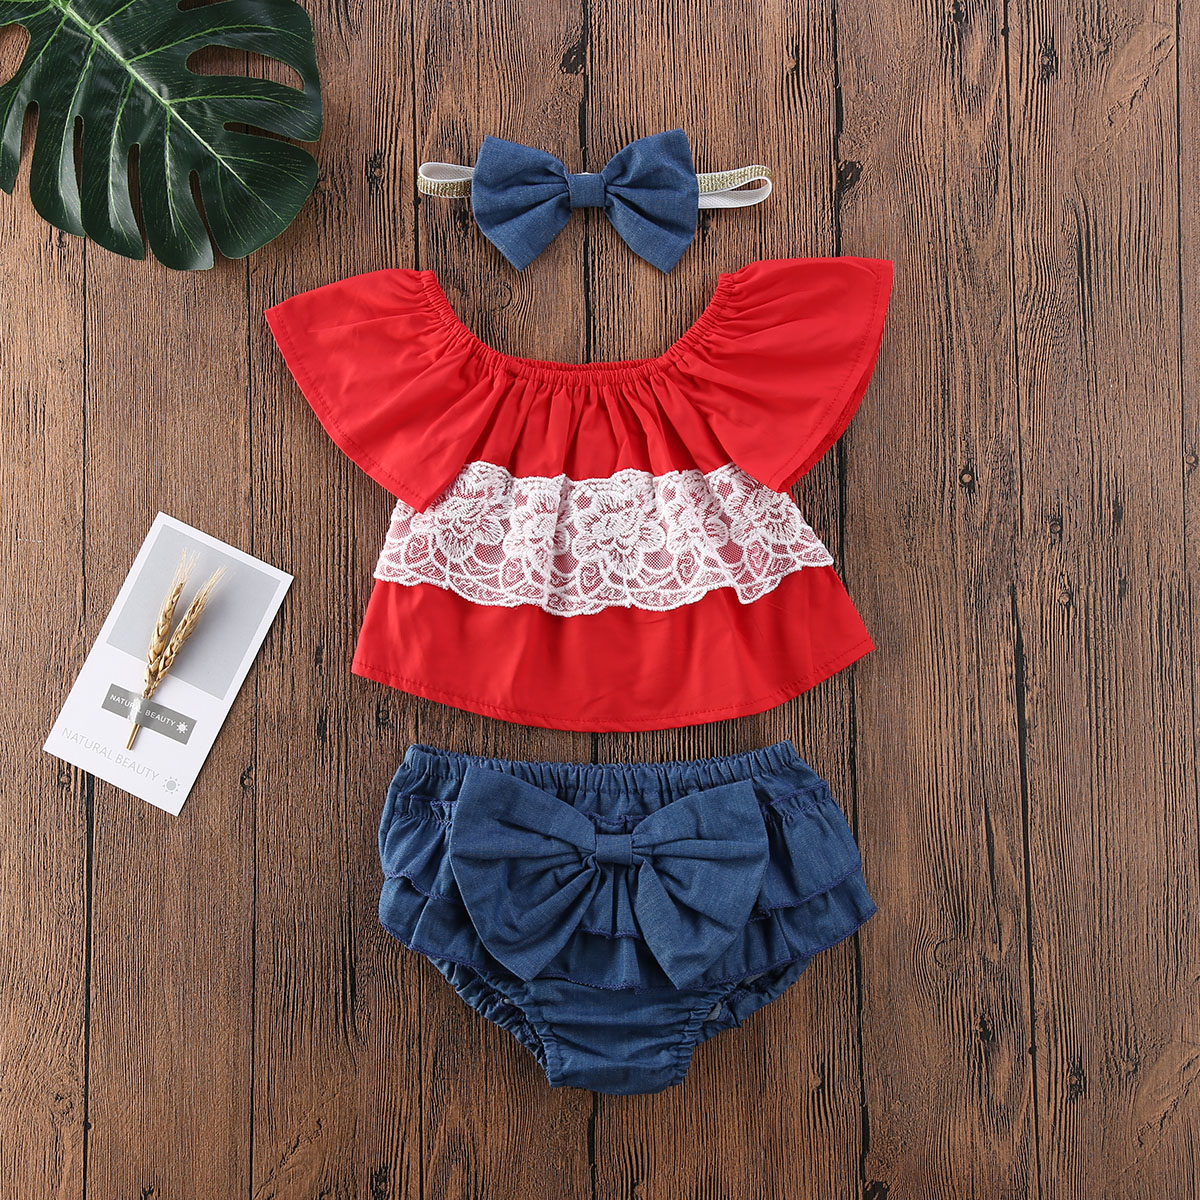 Emmababy Newborn Baby Girl Clothes Off Shoulder Lace Flower Sleeveless Tops Bowknot Short Pants Headband 3Pcs Outfits Clothes